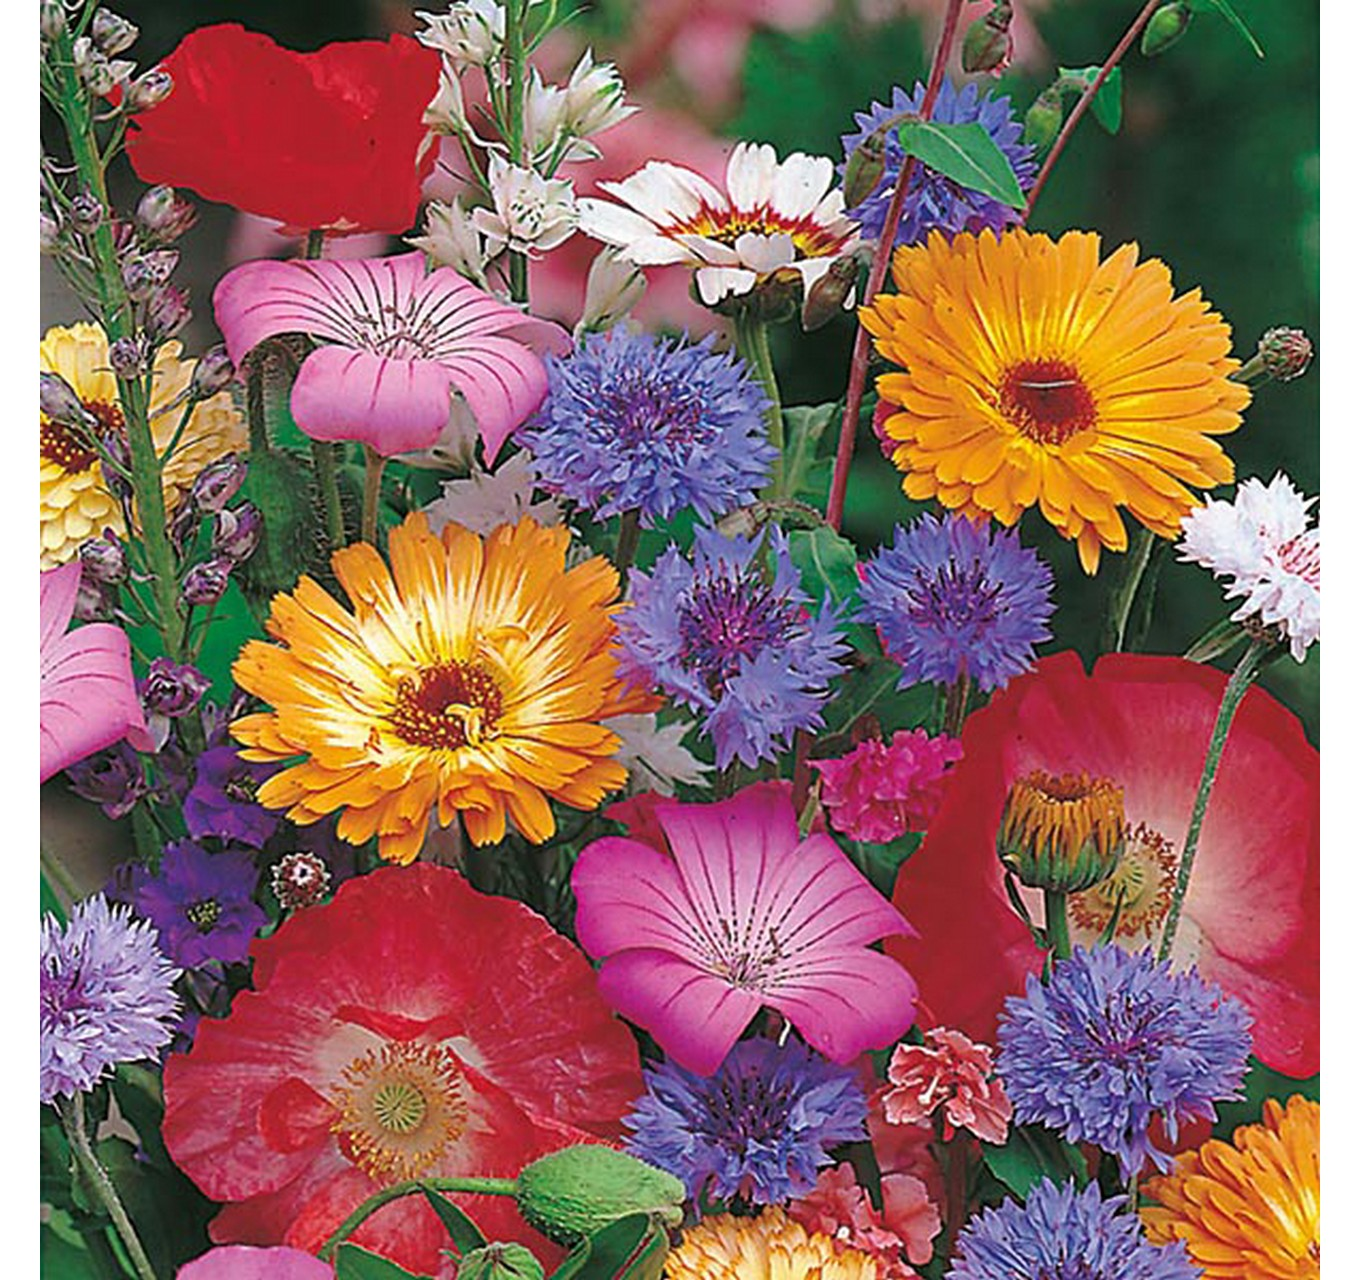 Mixed Annuals Quick & Easy